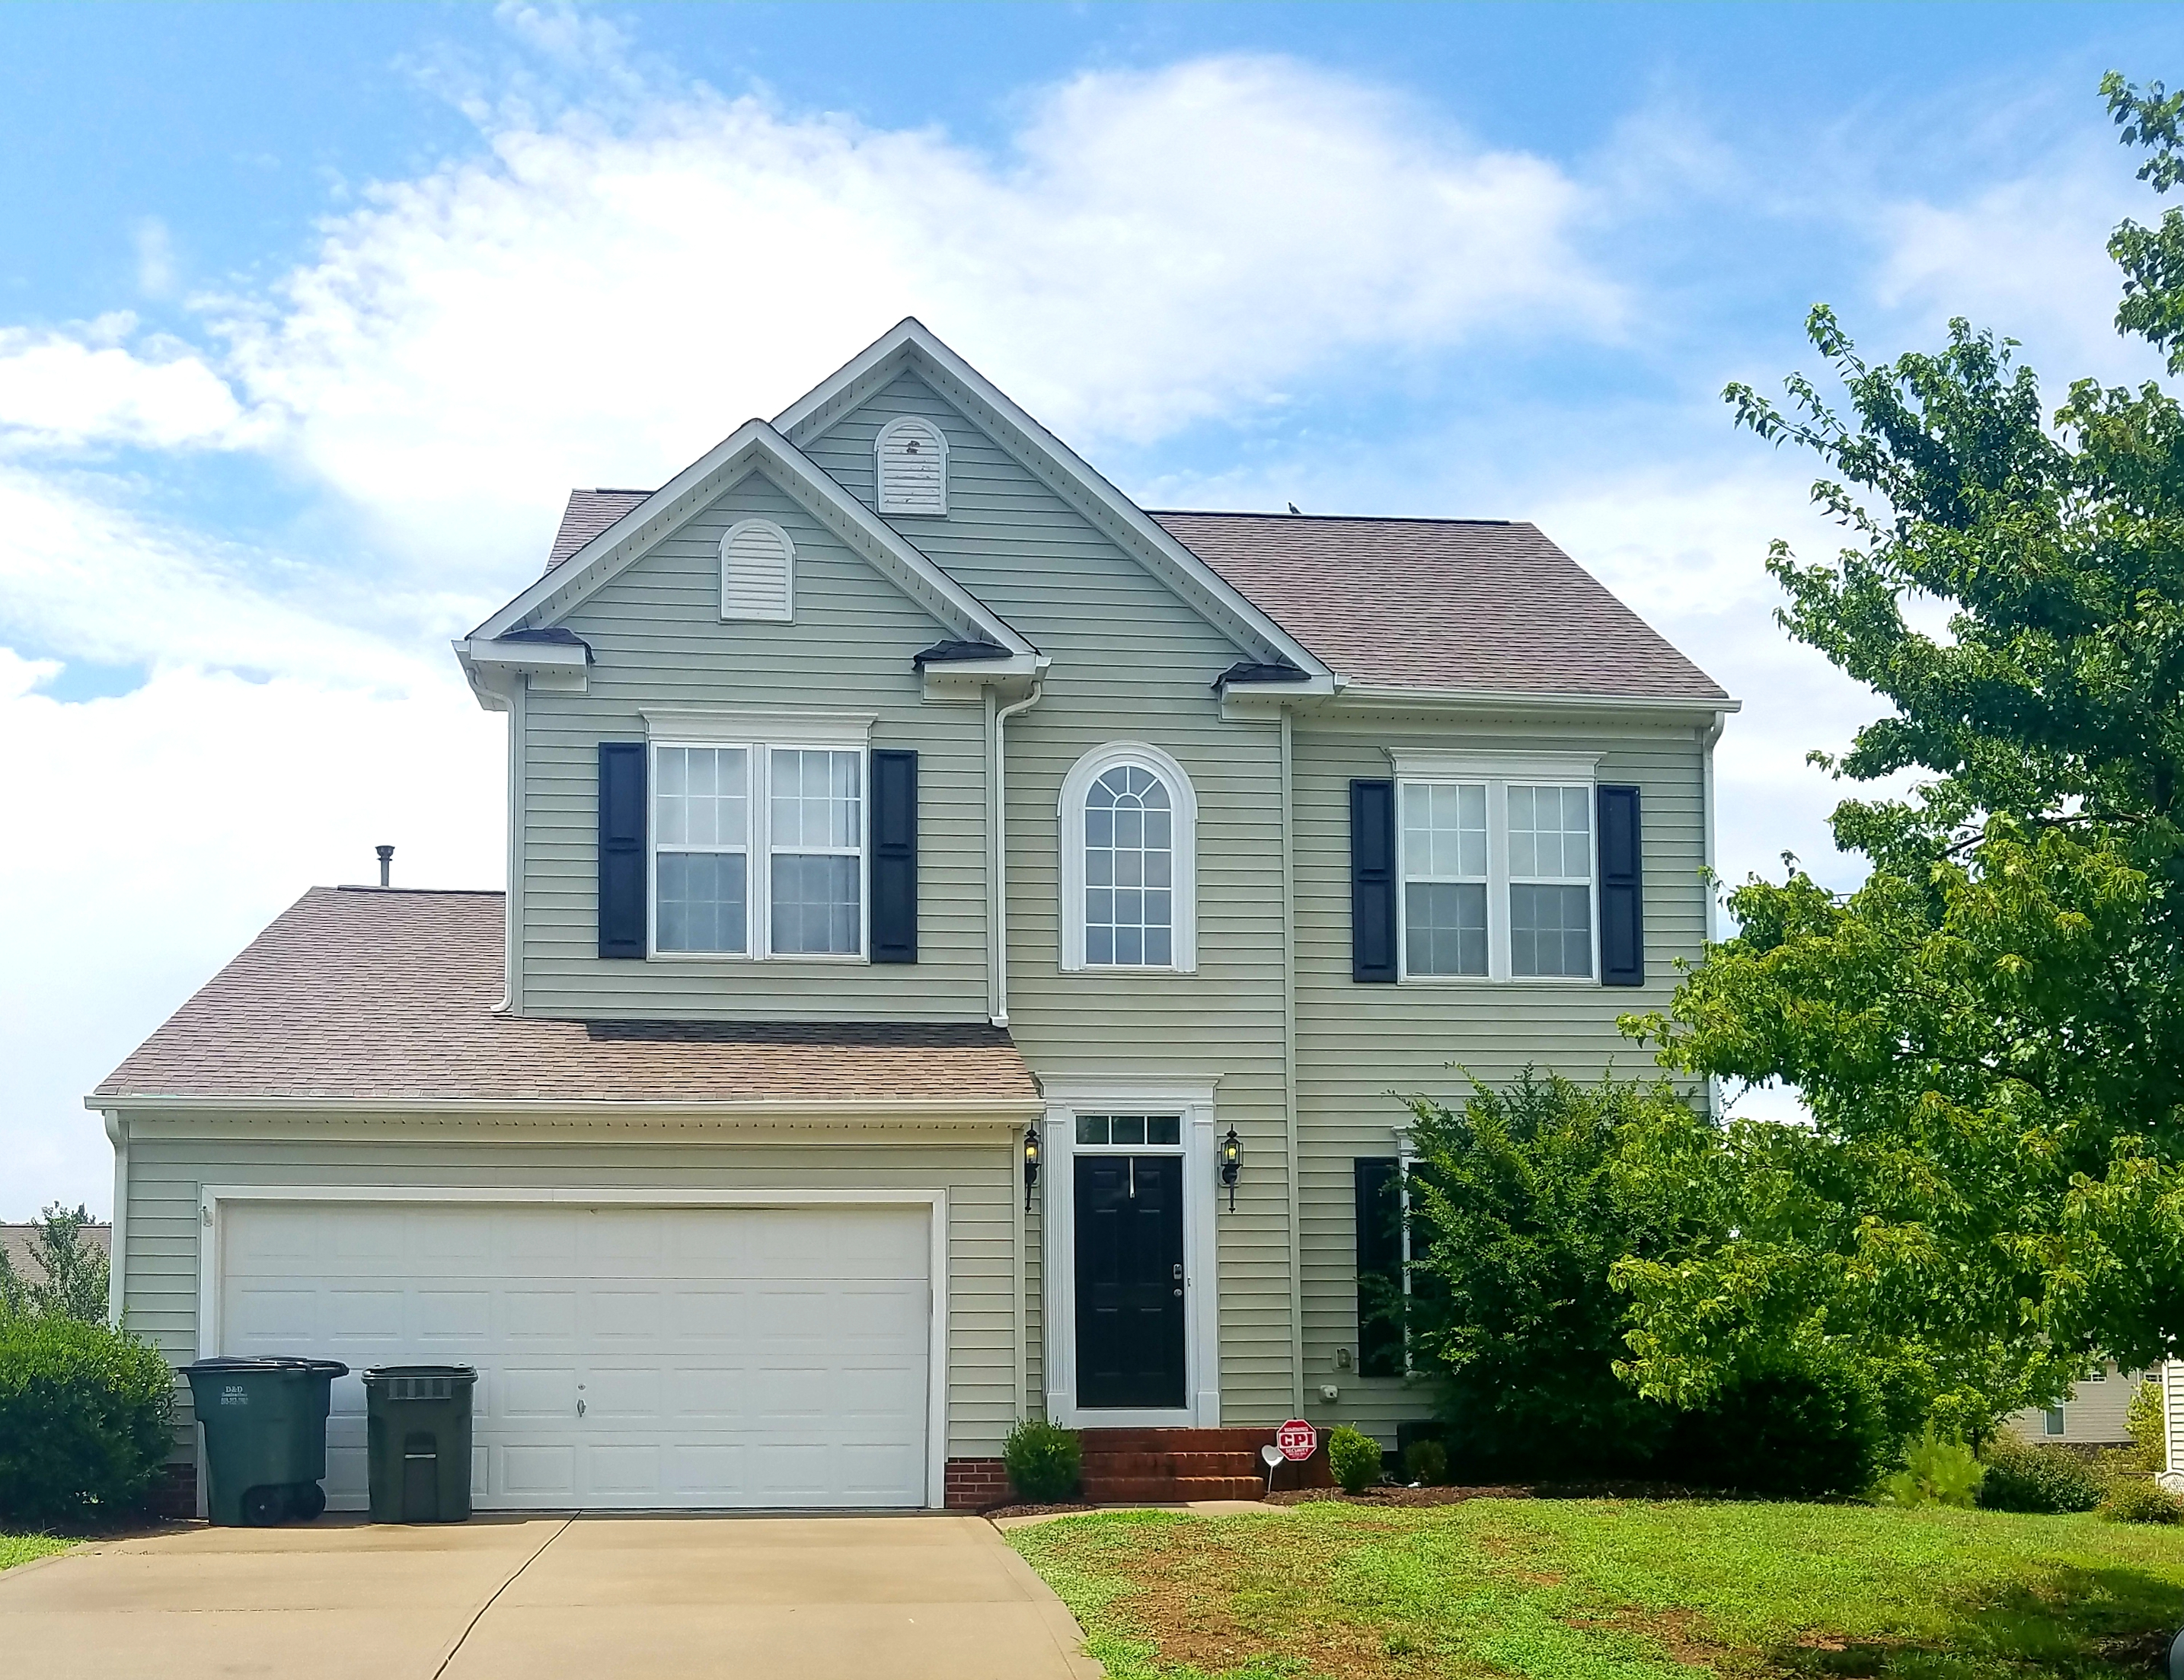 Photo of 622 Springhouse Pl, Clover, SC, 29710